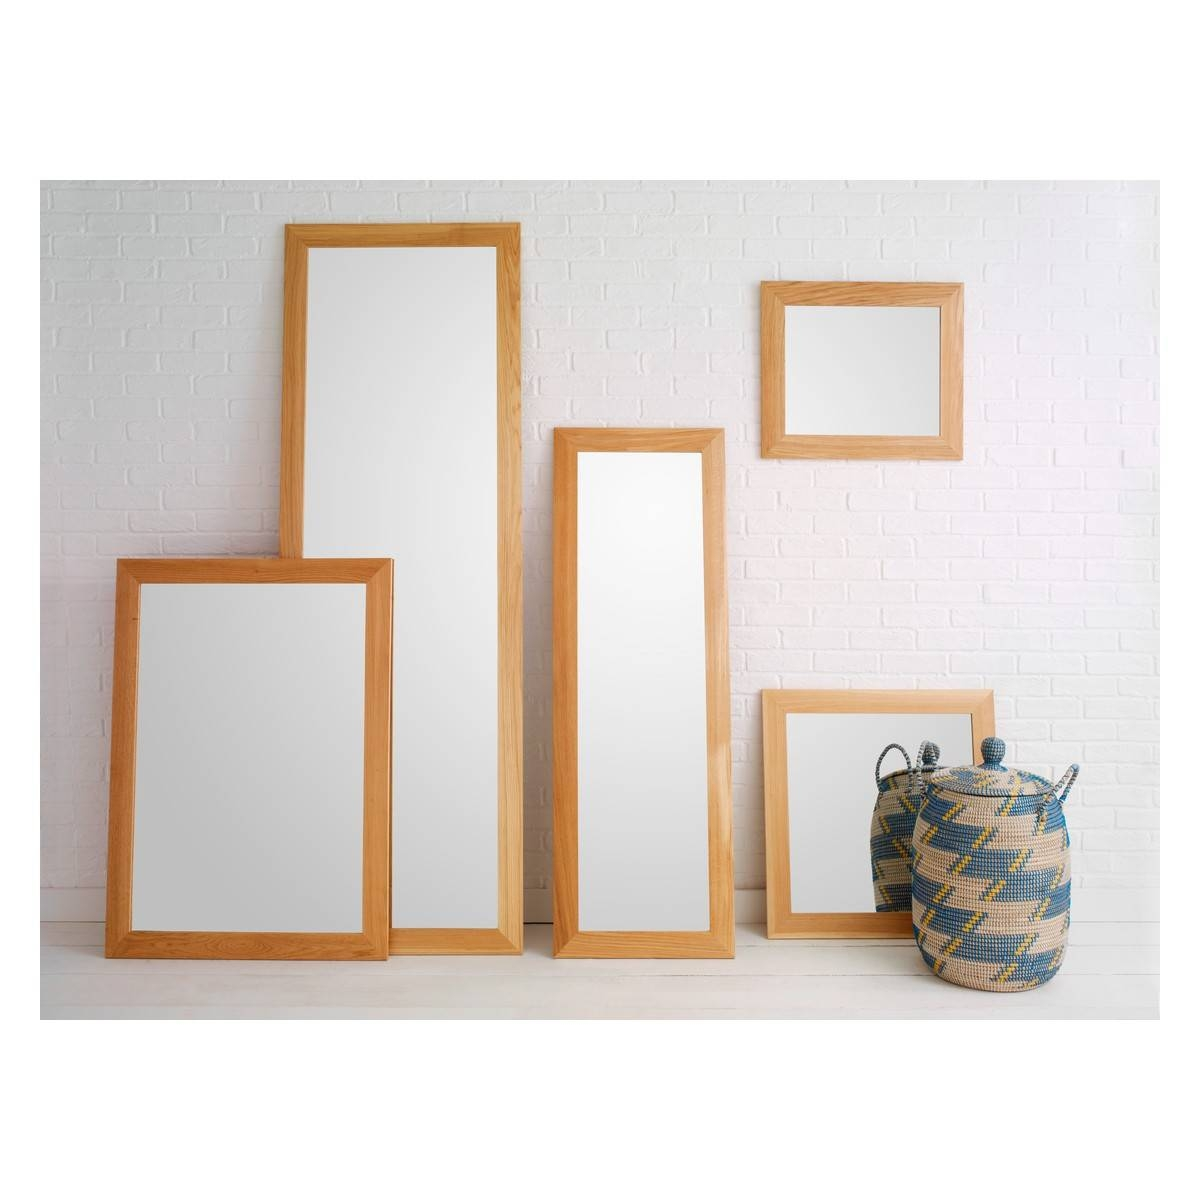 Long Mirrors For Walls 76 Inspiring Style For Mirror Wall regarding Oak Mirrors (Image 3 of 15)